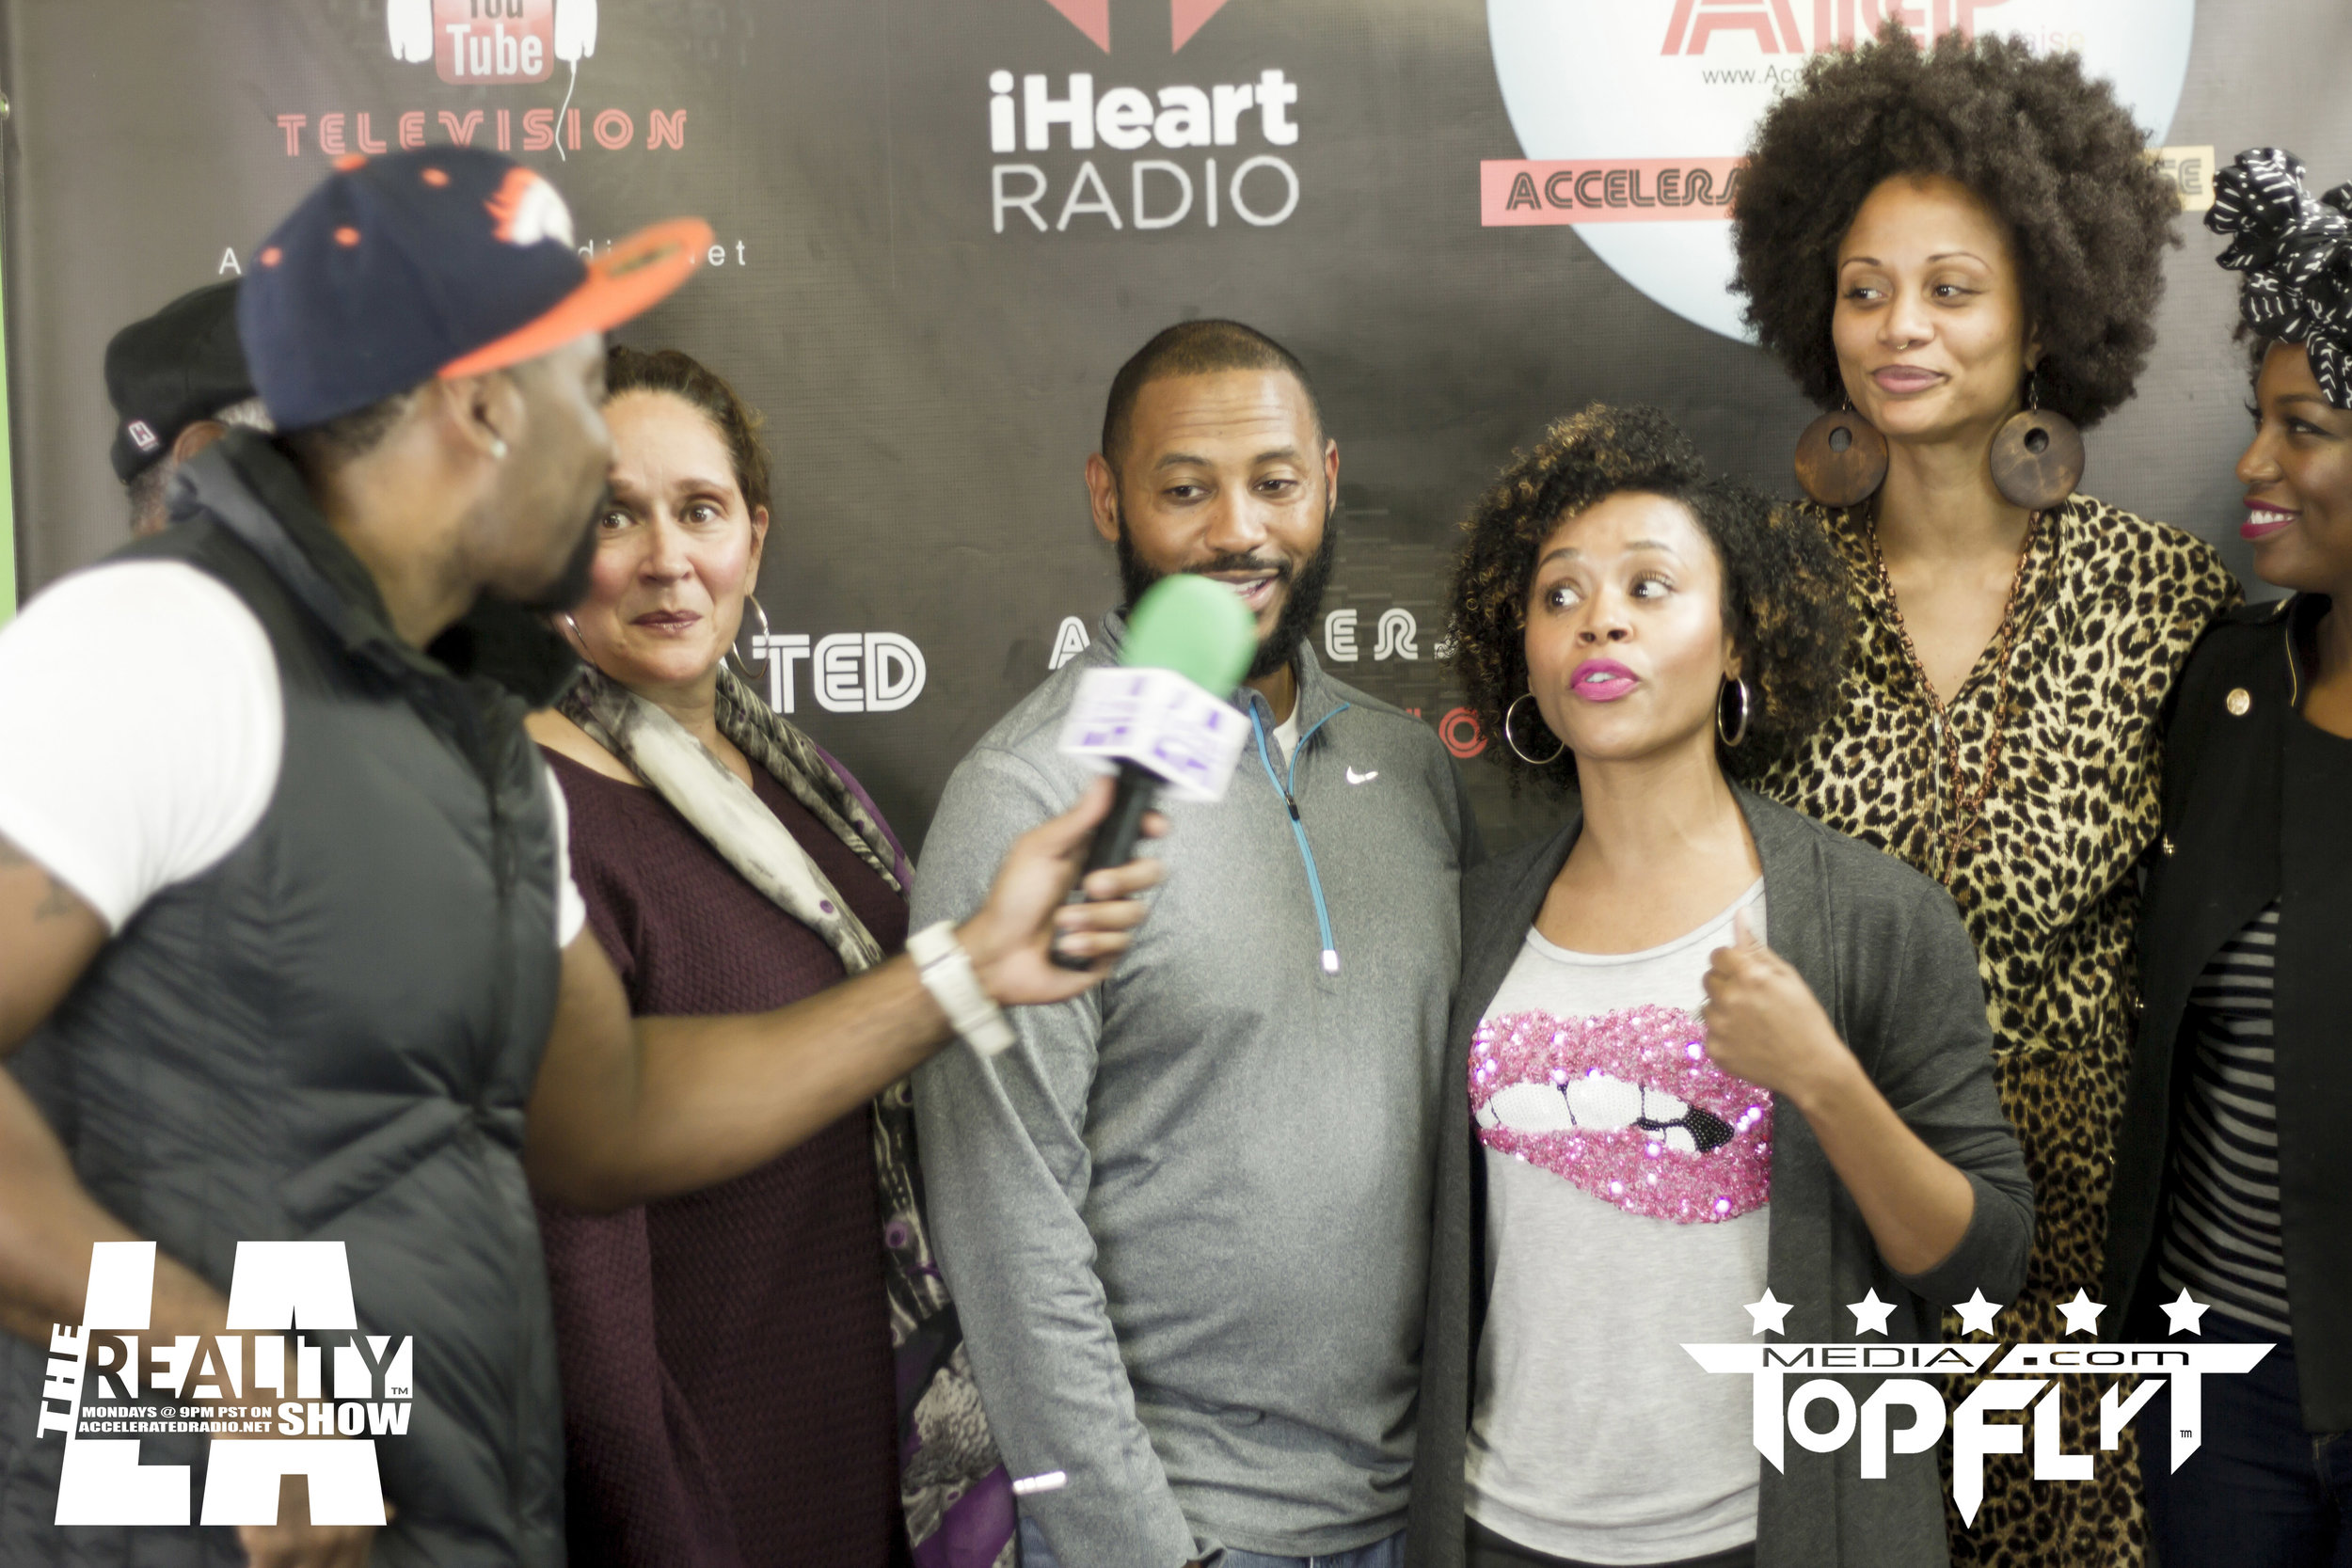 The Reality Show LA ft. Cast of FunnyMarriedStuff And Raquel Harris - 01-16-17_9.jpg